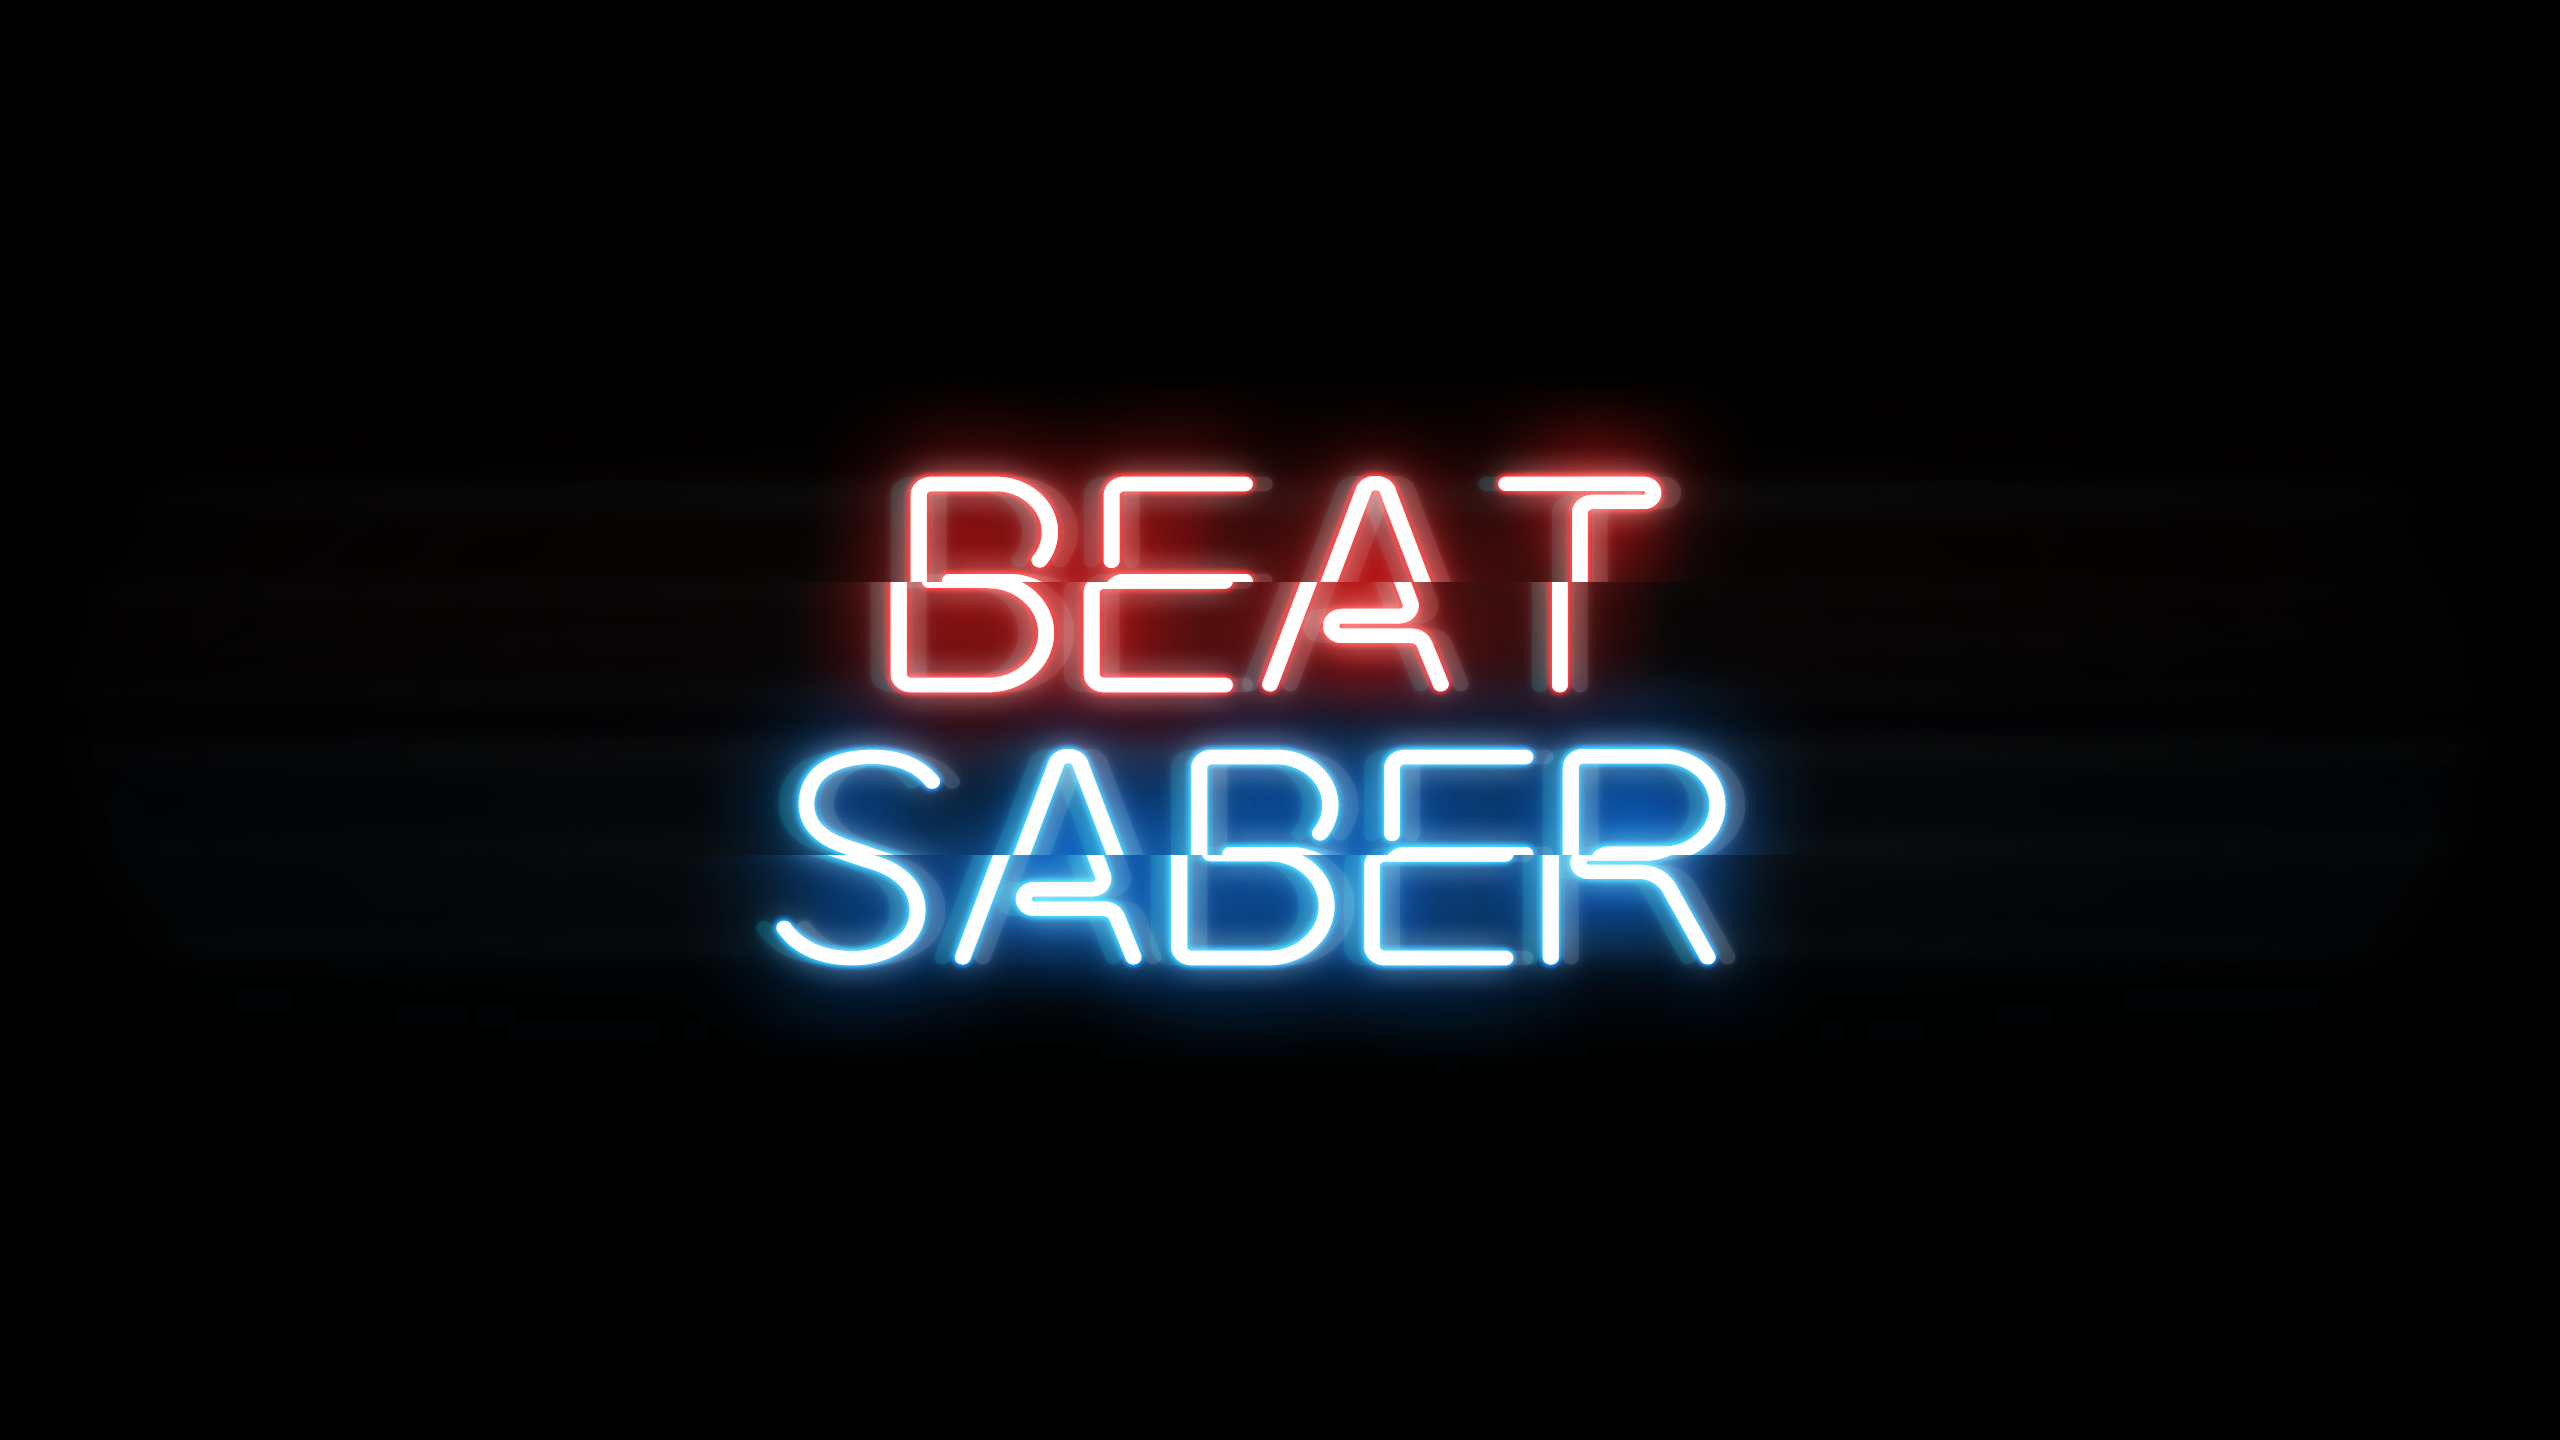 beat saber logo wallpaper 67666